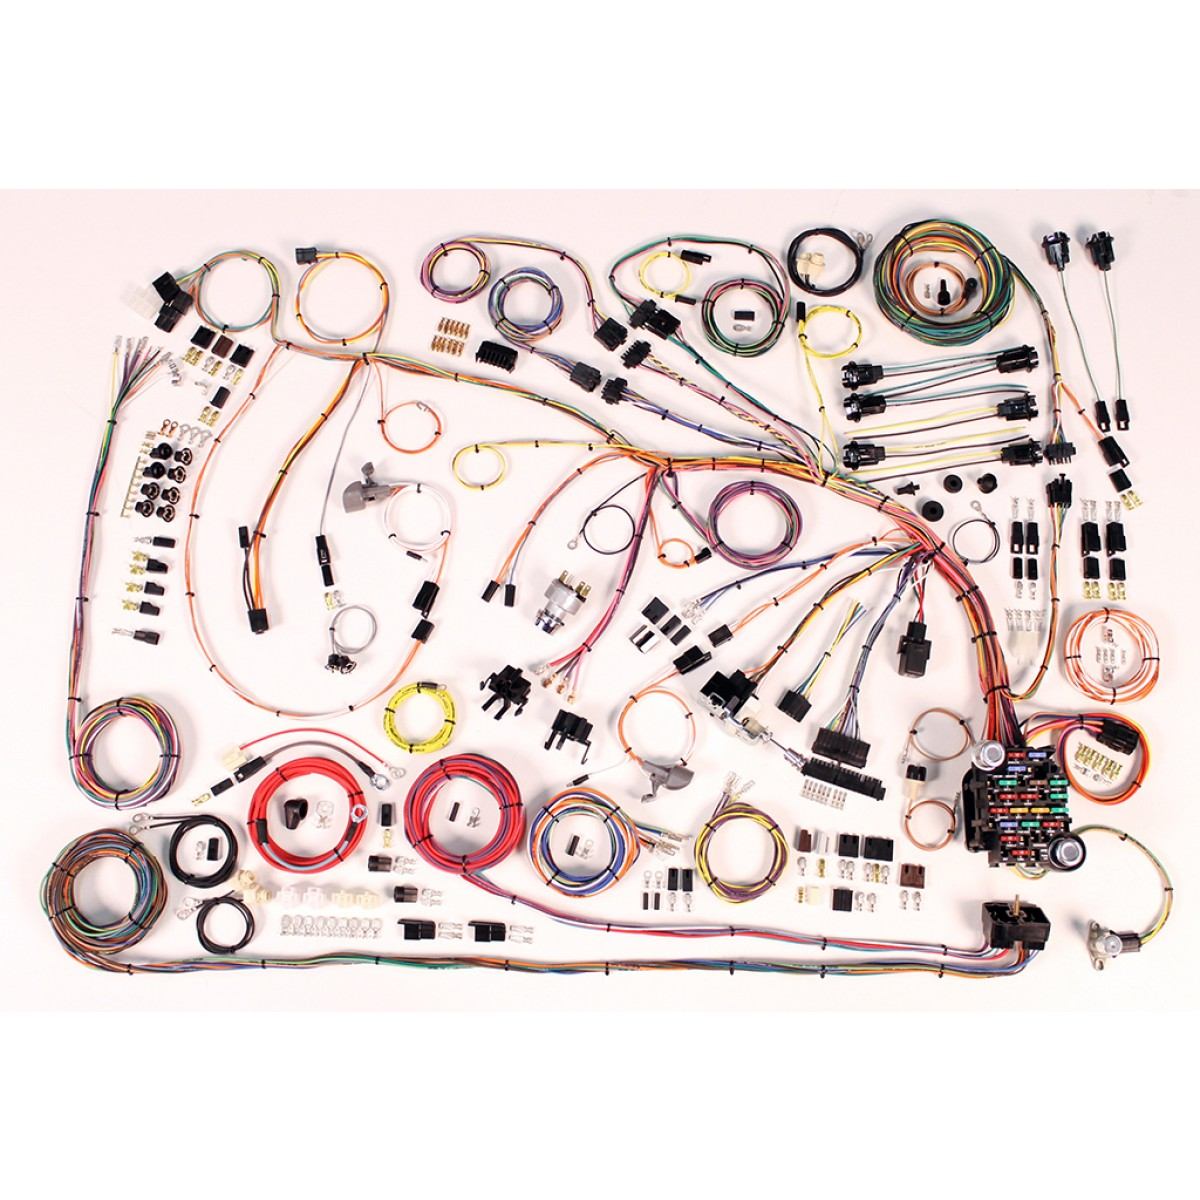 hight resolution of 1966 1968 impala wire harness complete wiring harness kit 1966 1968 chevy impala wiring harness 68 impala wiring harness